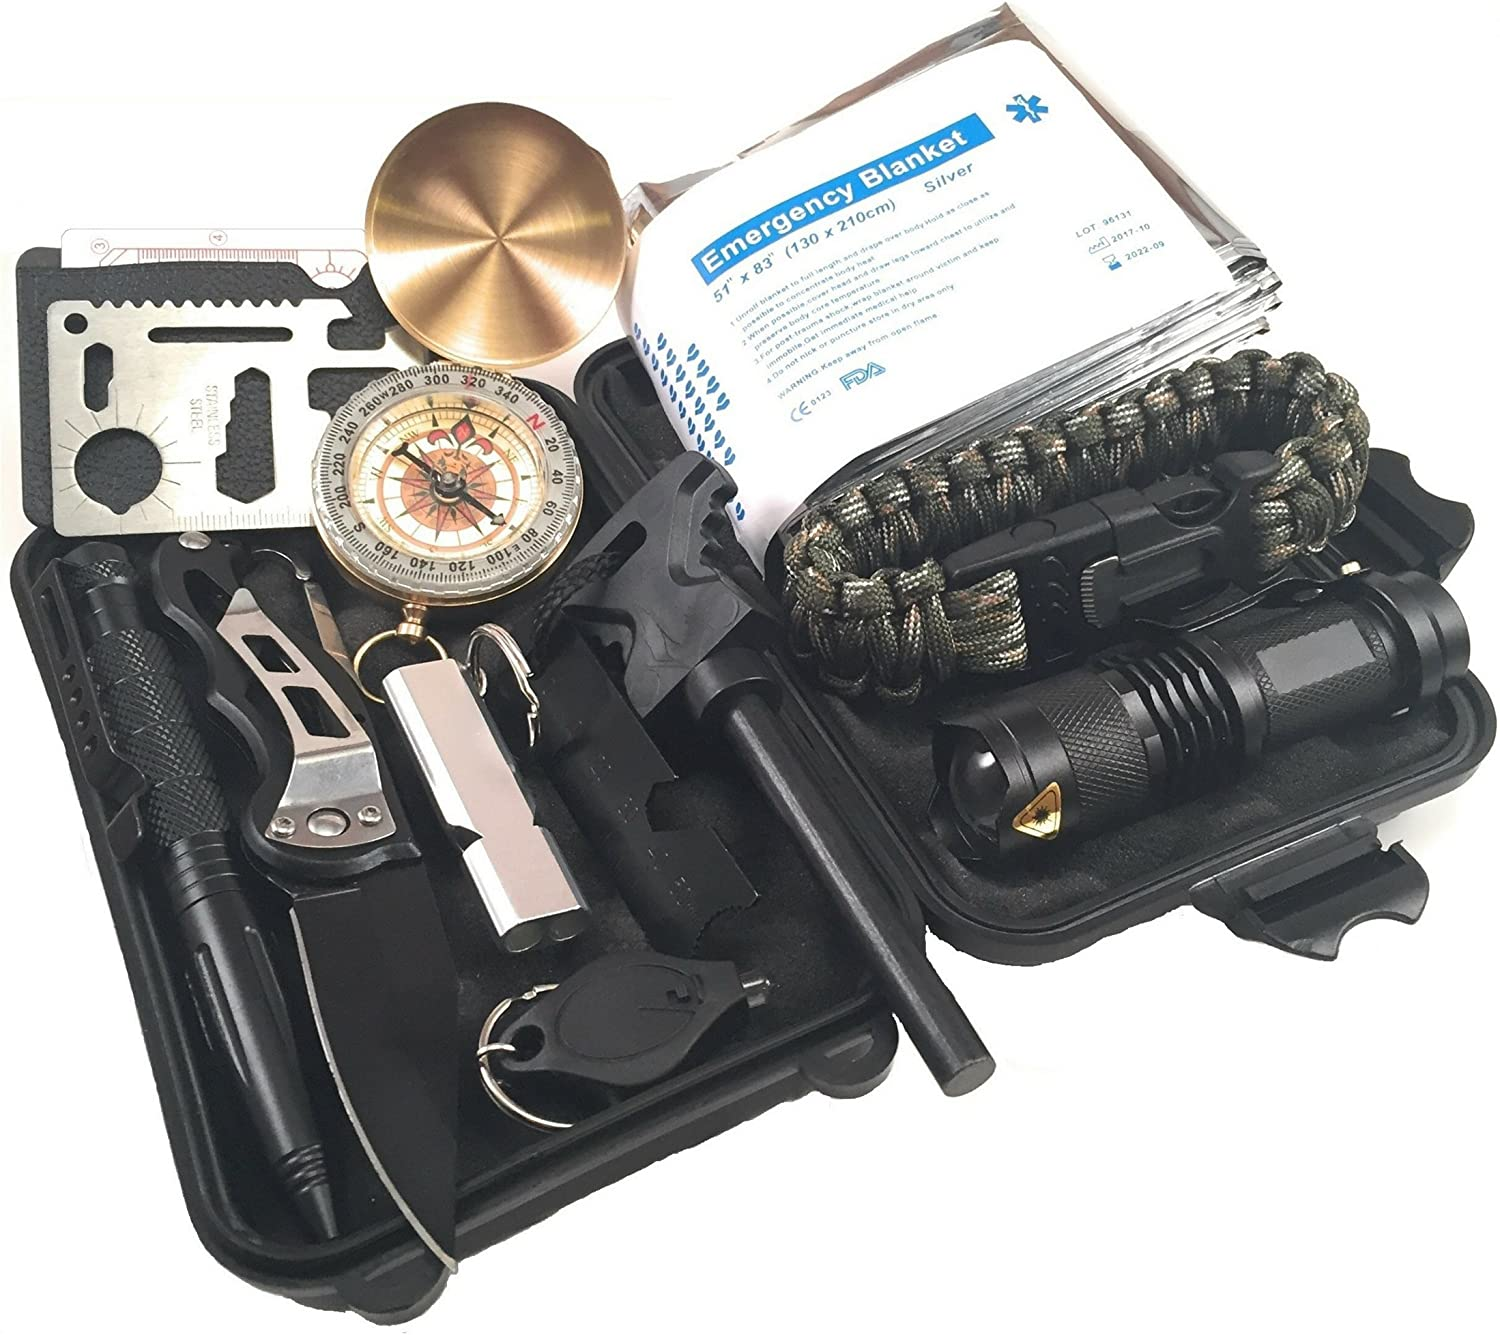 Survival Gear Kits 10-in-1 Outdoor Emergency SOS Survive Tool Set for Wilderness